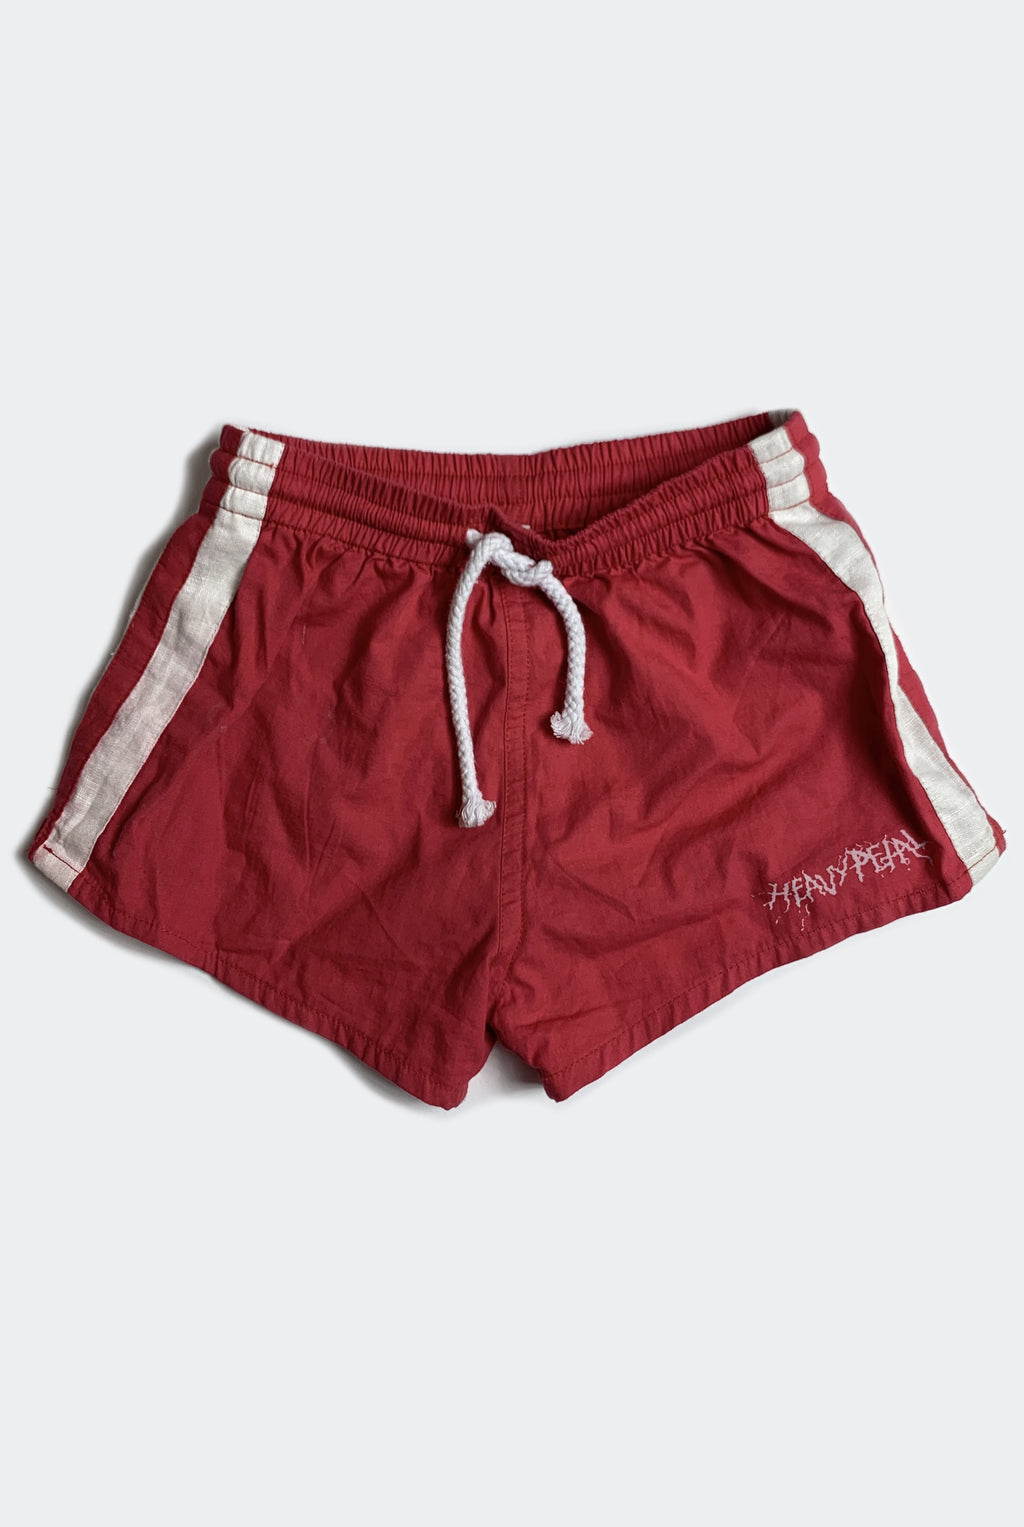 OFF TRACK SHORTS / RED